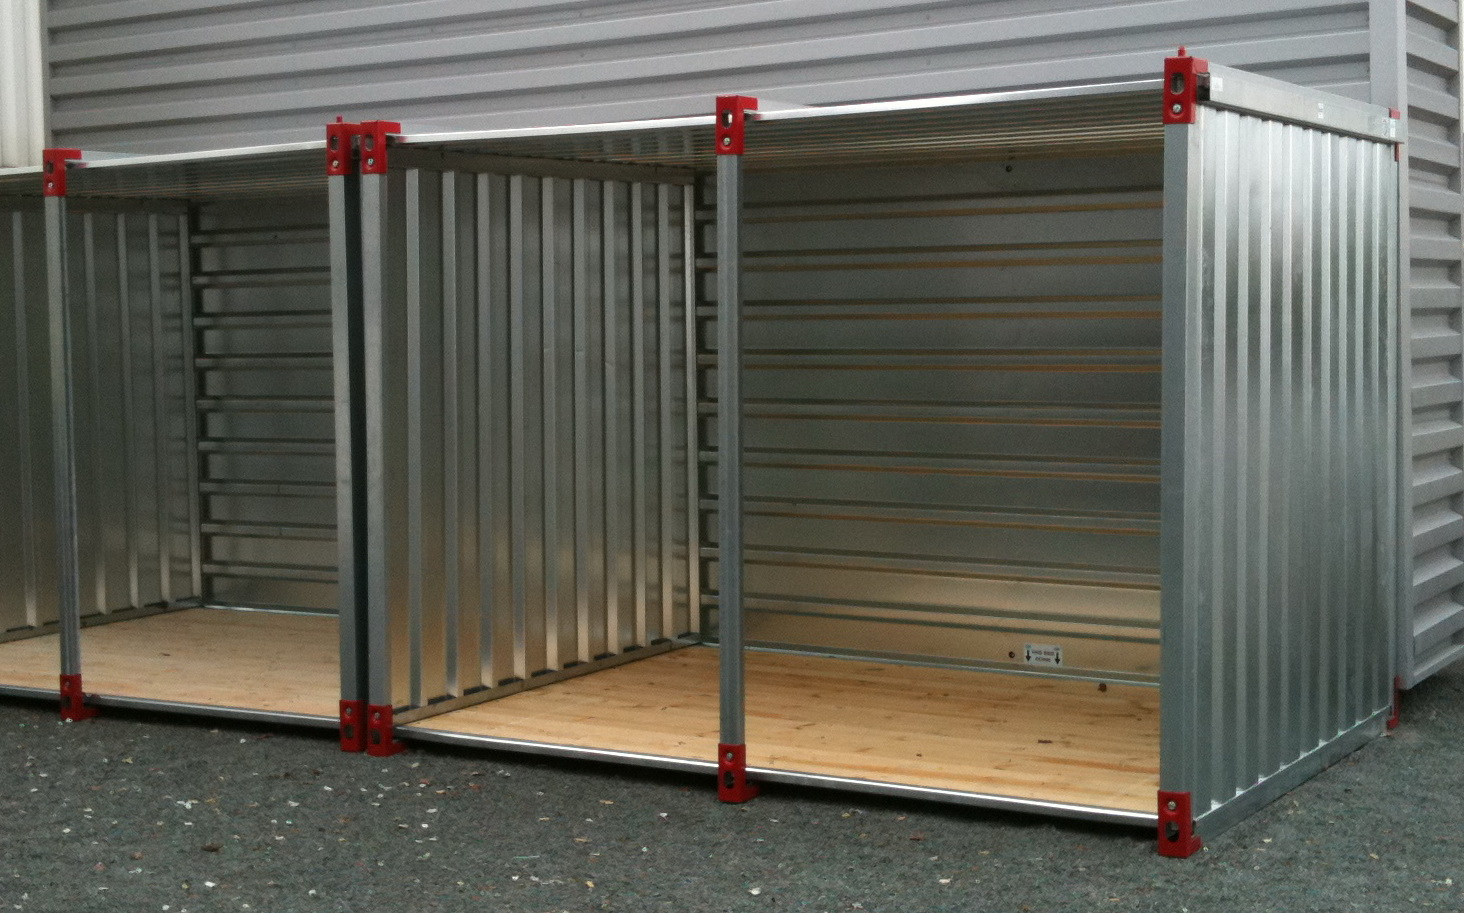 Kovobel le container de stockage demontable abri for Autoconstruction maison container